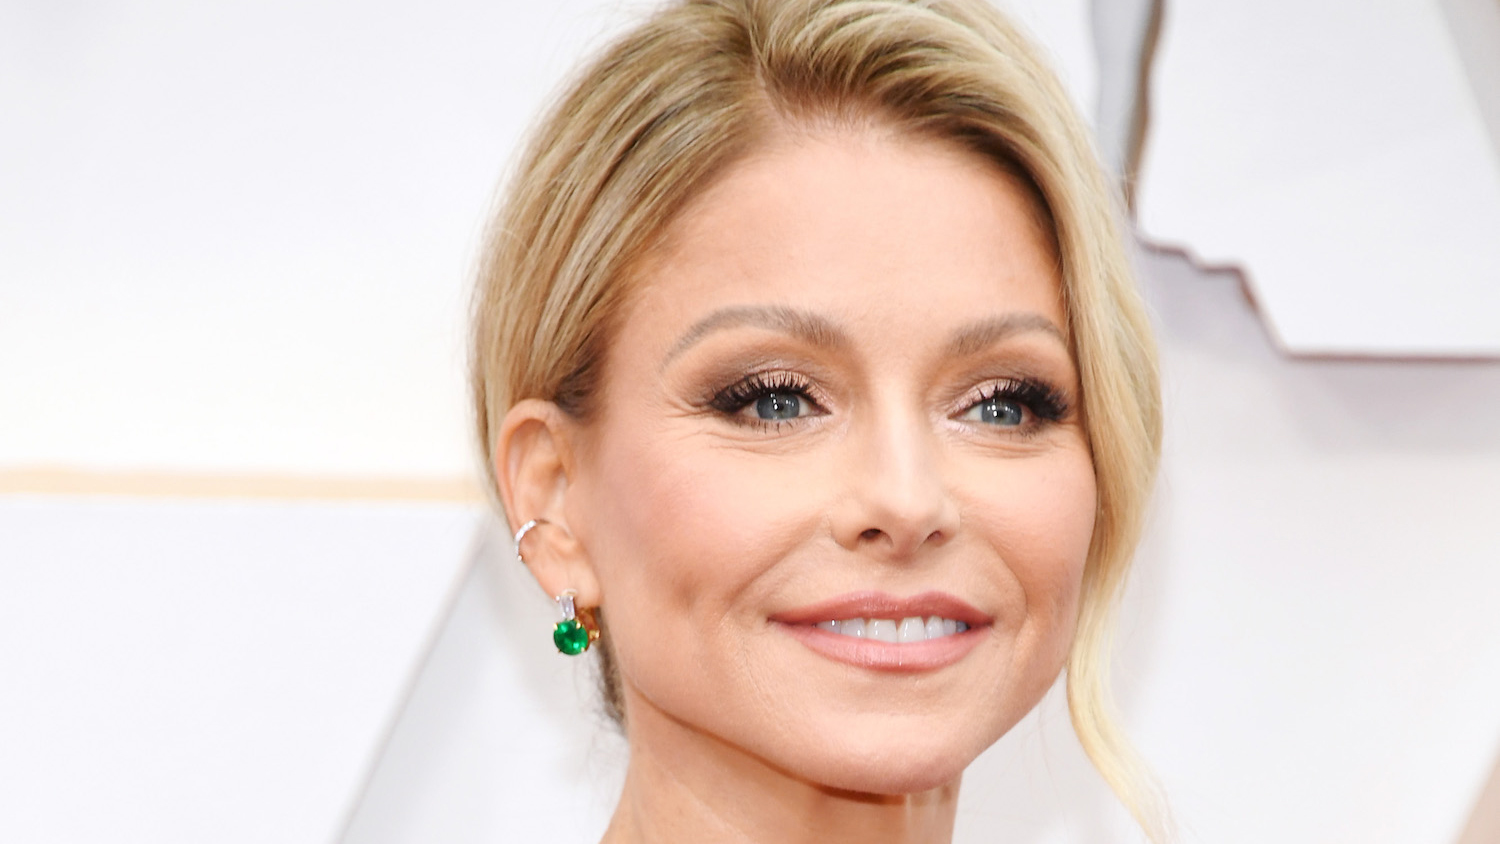 Kelly Ripa's Tinted Sunscreen Gives Her a Luminous Glow